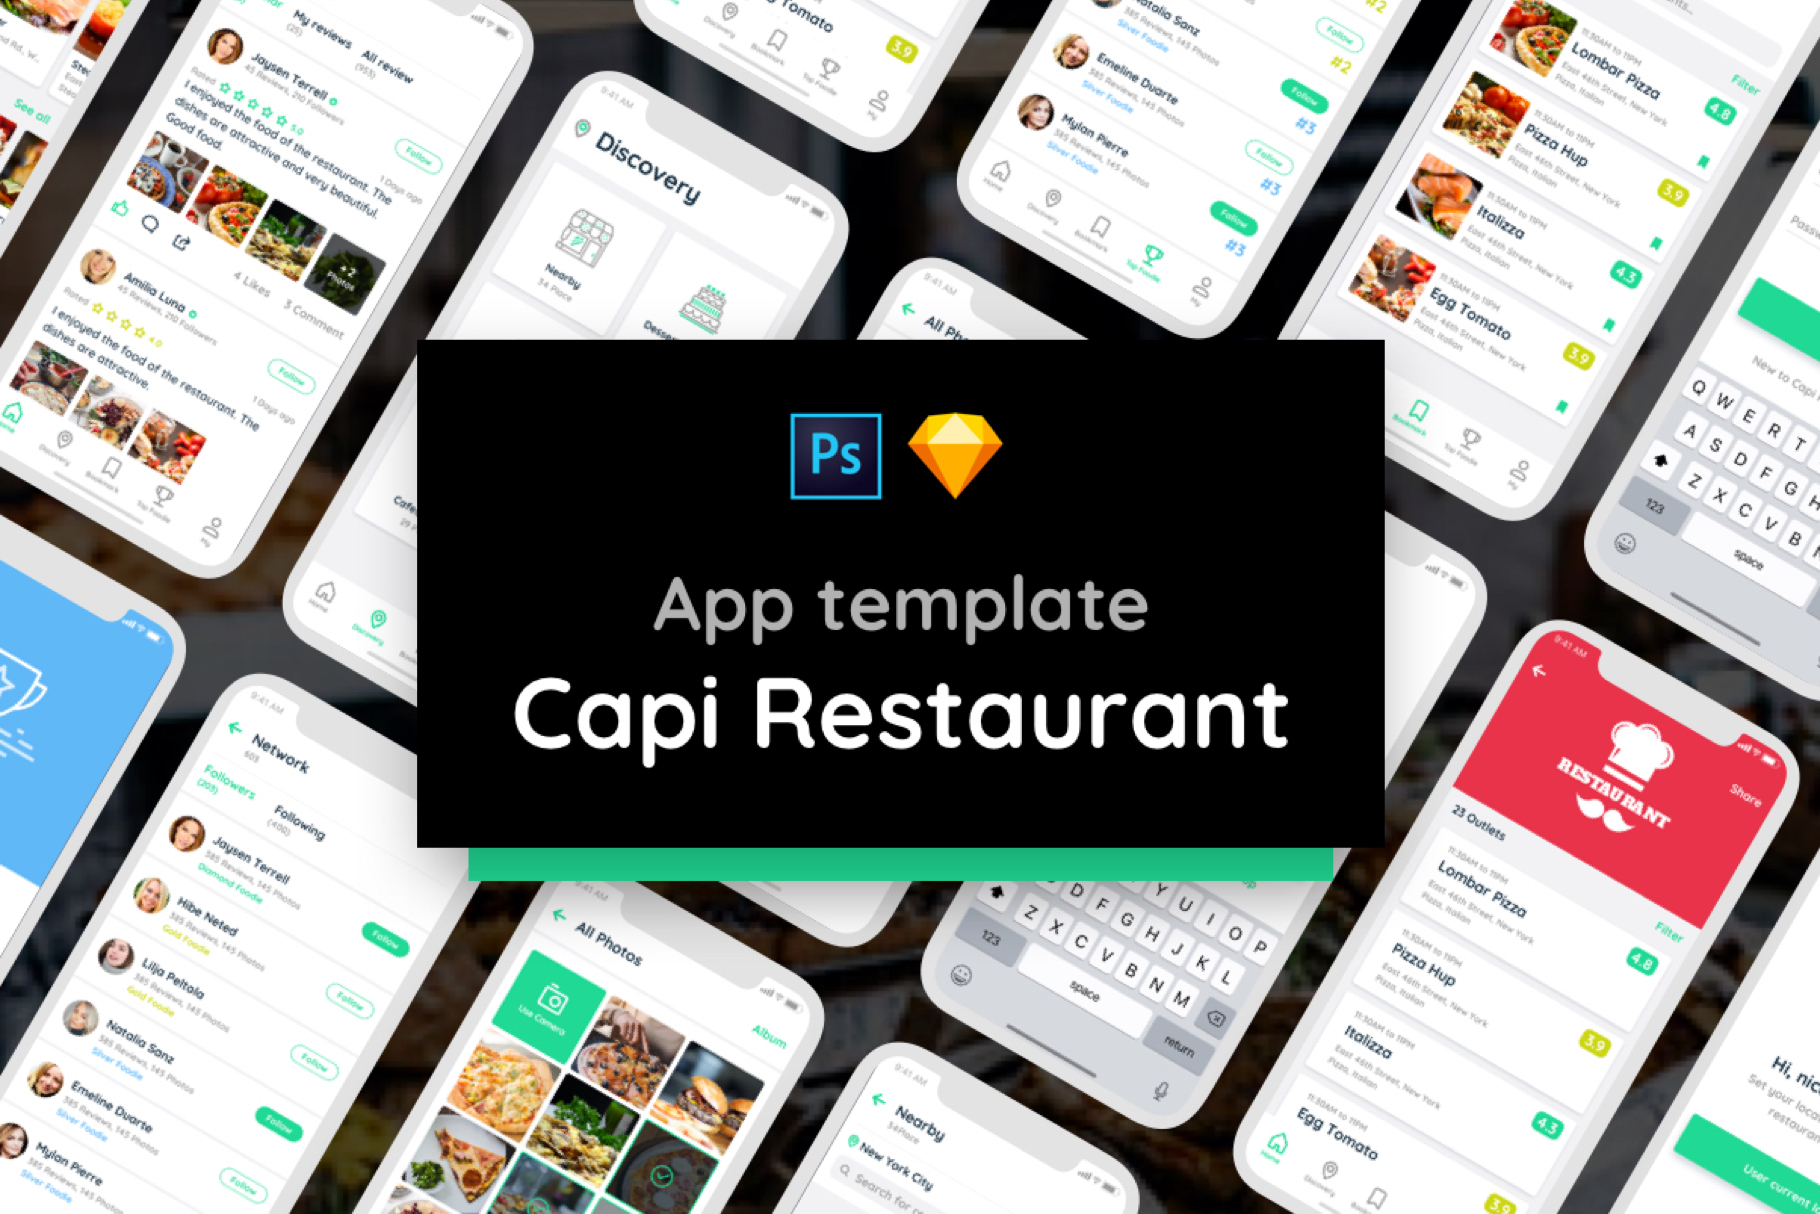 Capi Restaurant iOS UI Kit